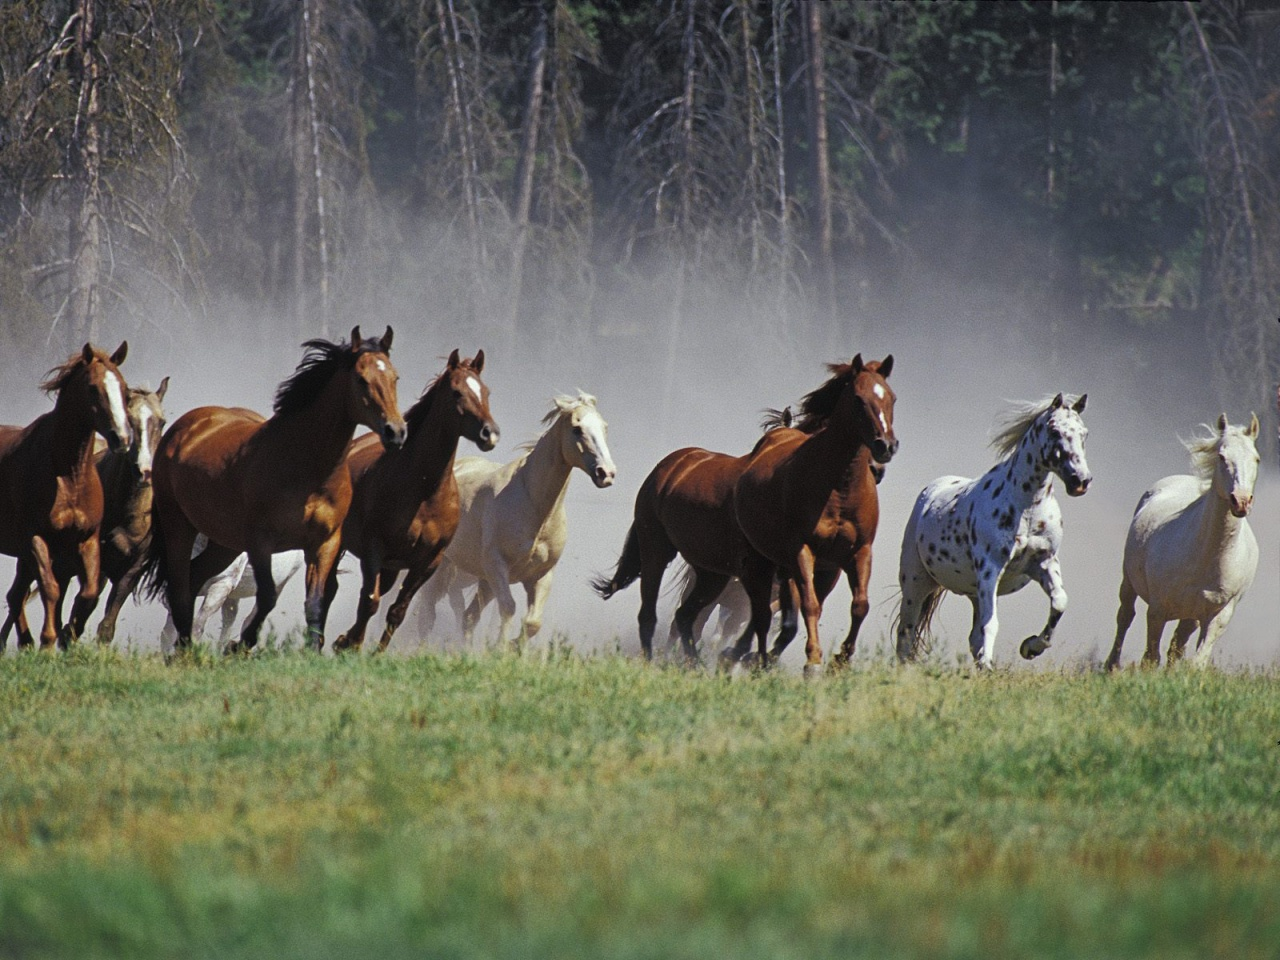 download desktop wallpaper horses which is under the horse wallpapers 1280x960